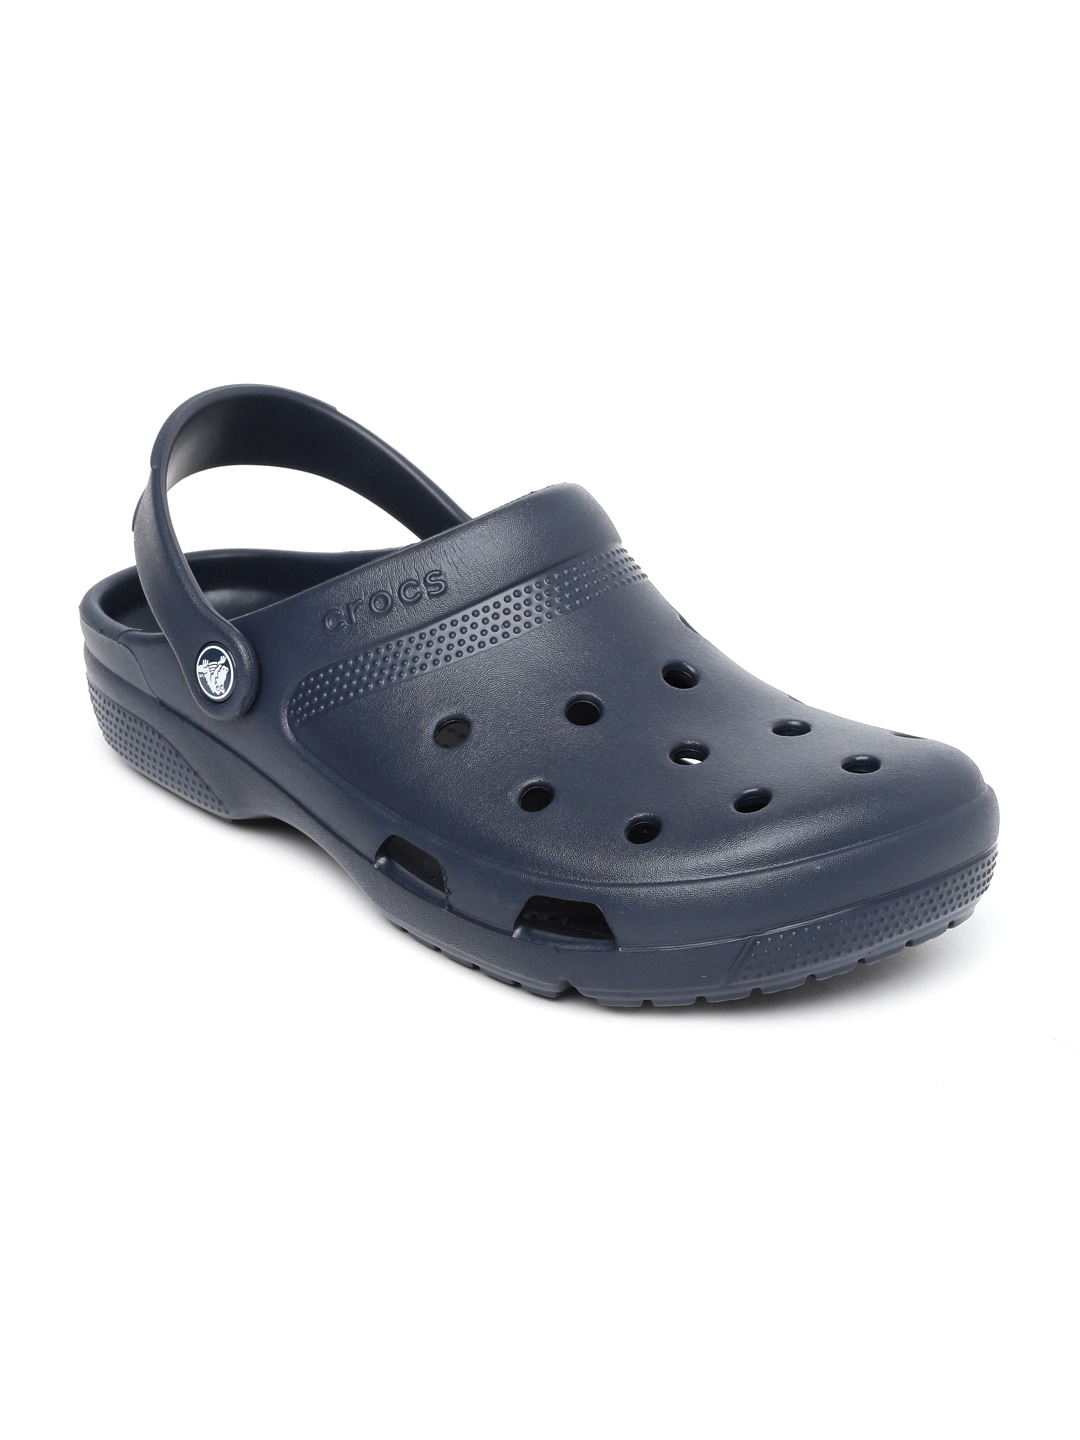 5d7f7065f Crocs Shoes Online - Buy Crocs Flip Flops   Sandals Online in India - Myntra